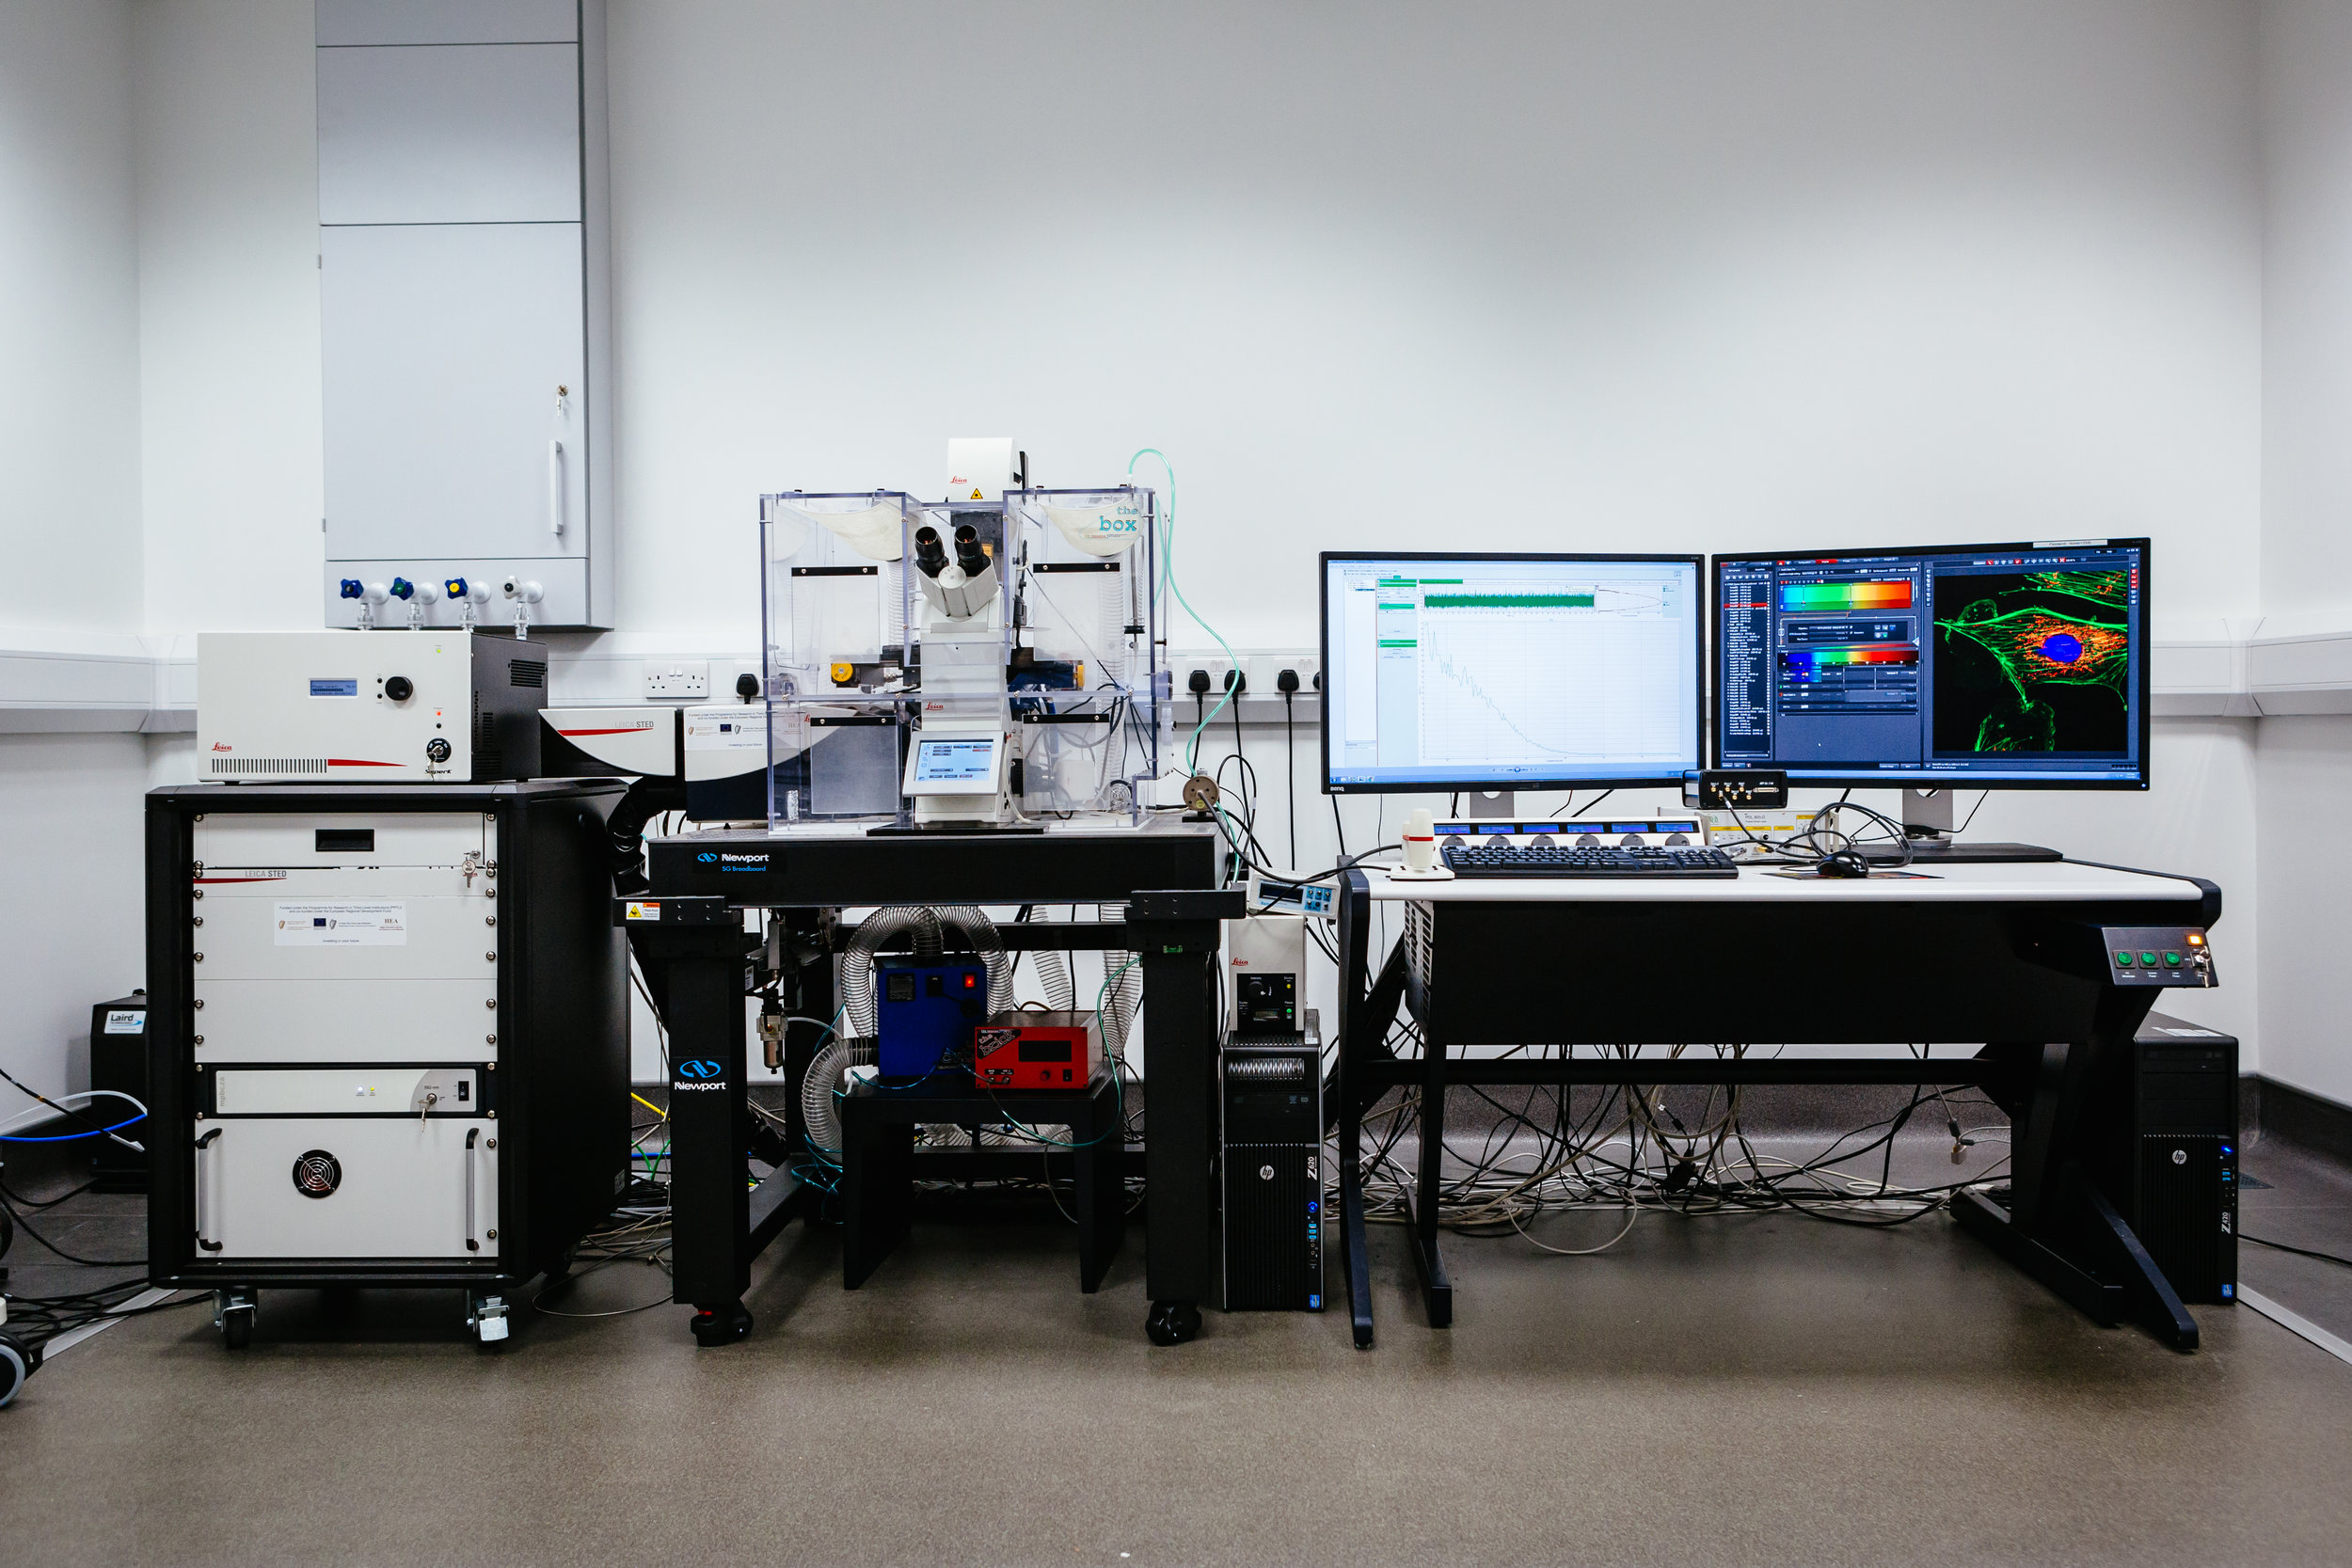 Leica TCS SP8 STED Microscope at the NRF at DCU